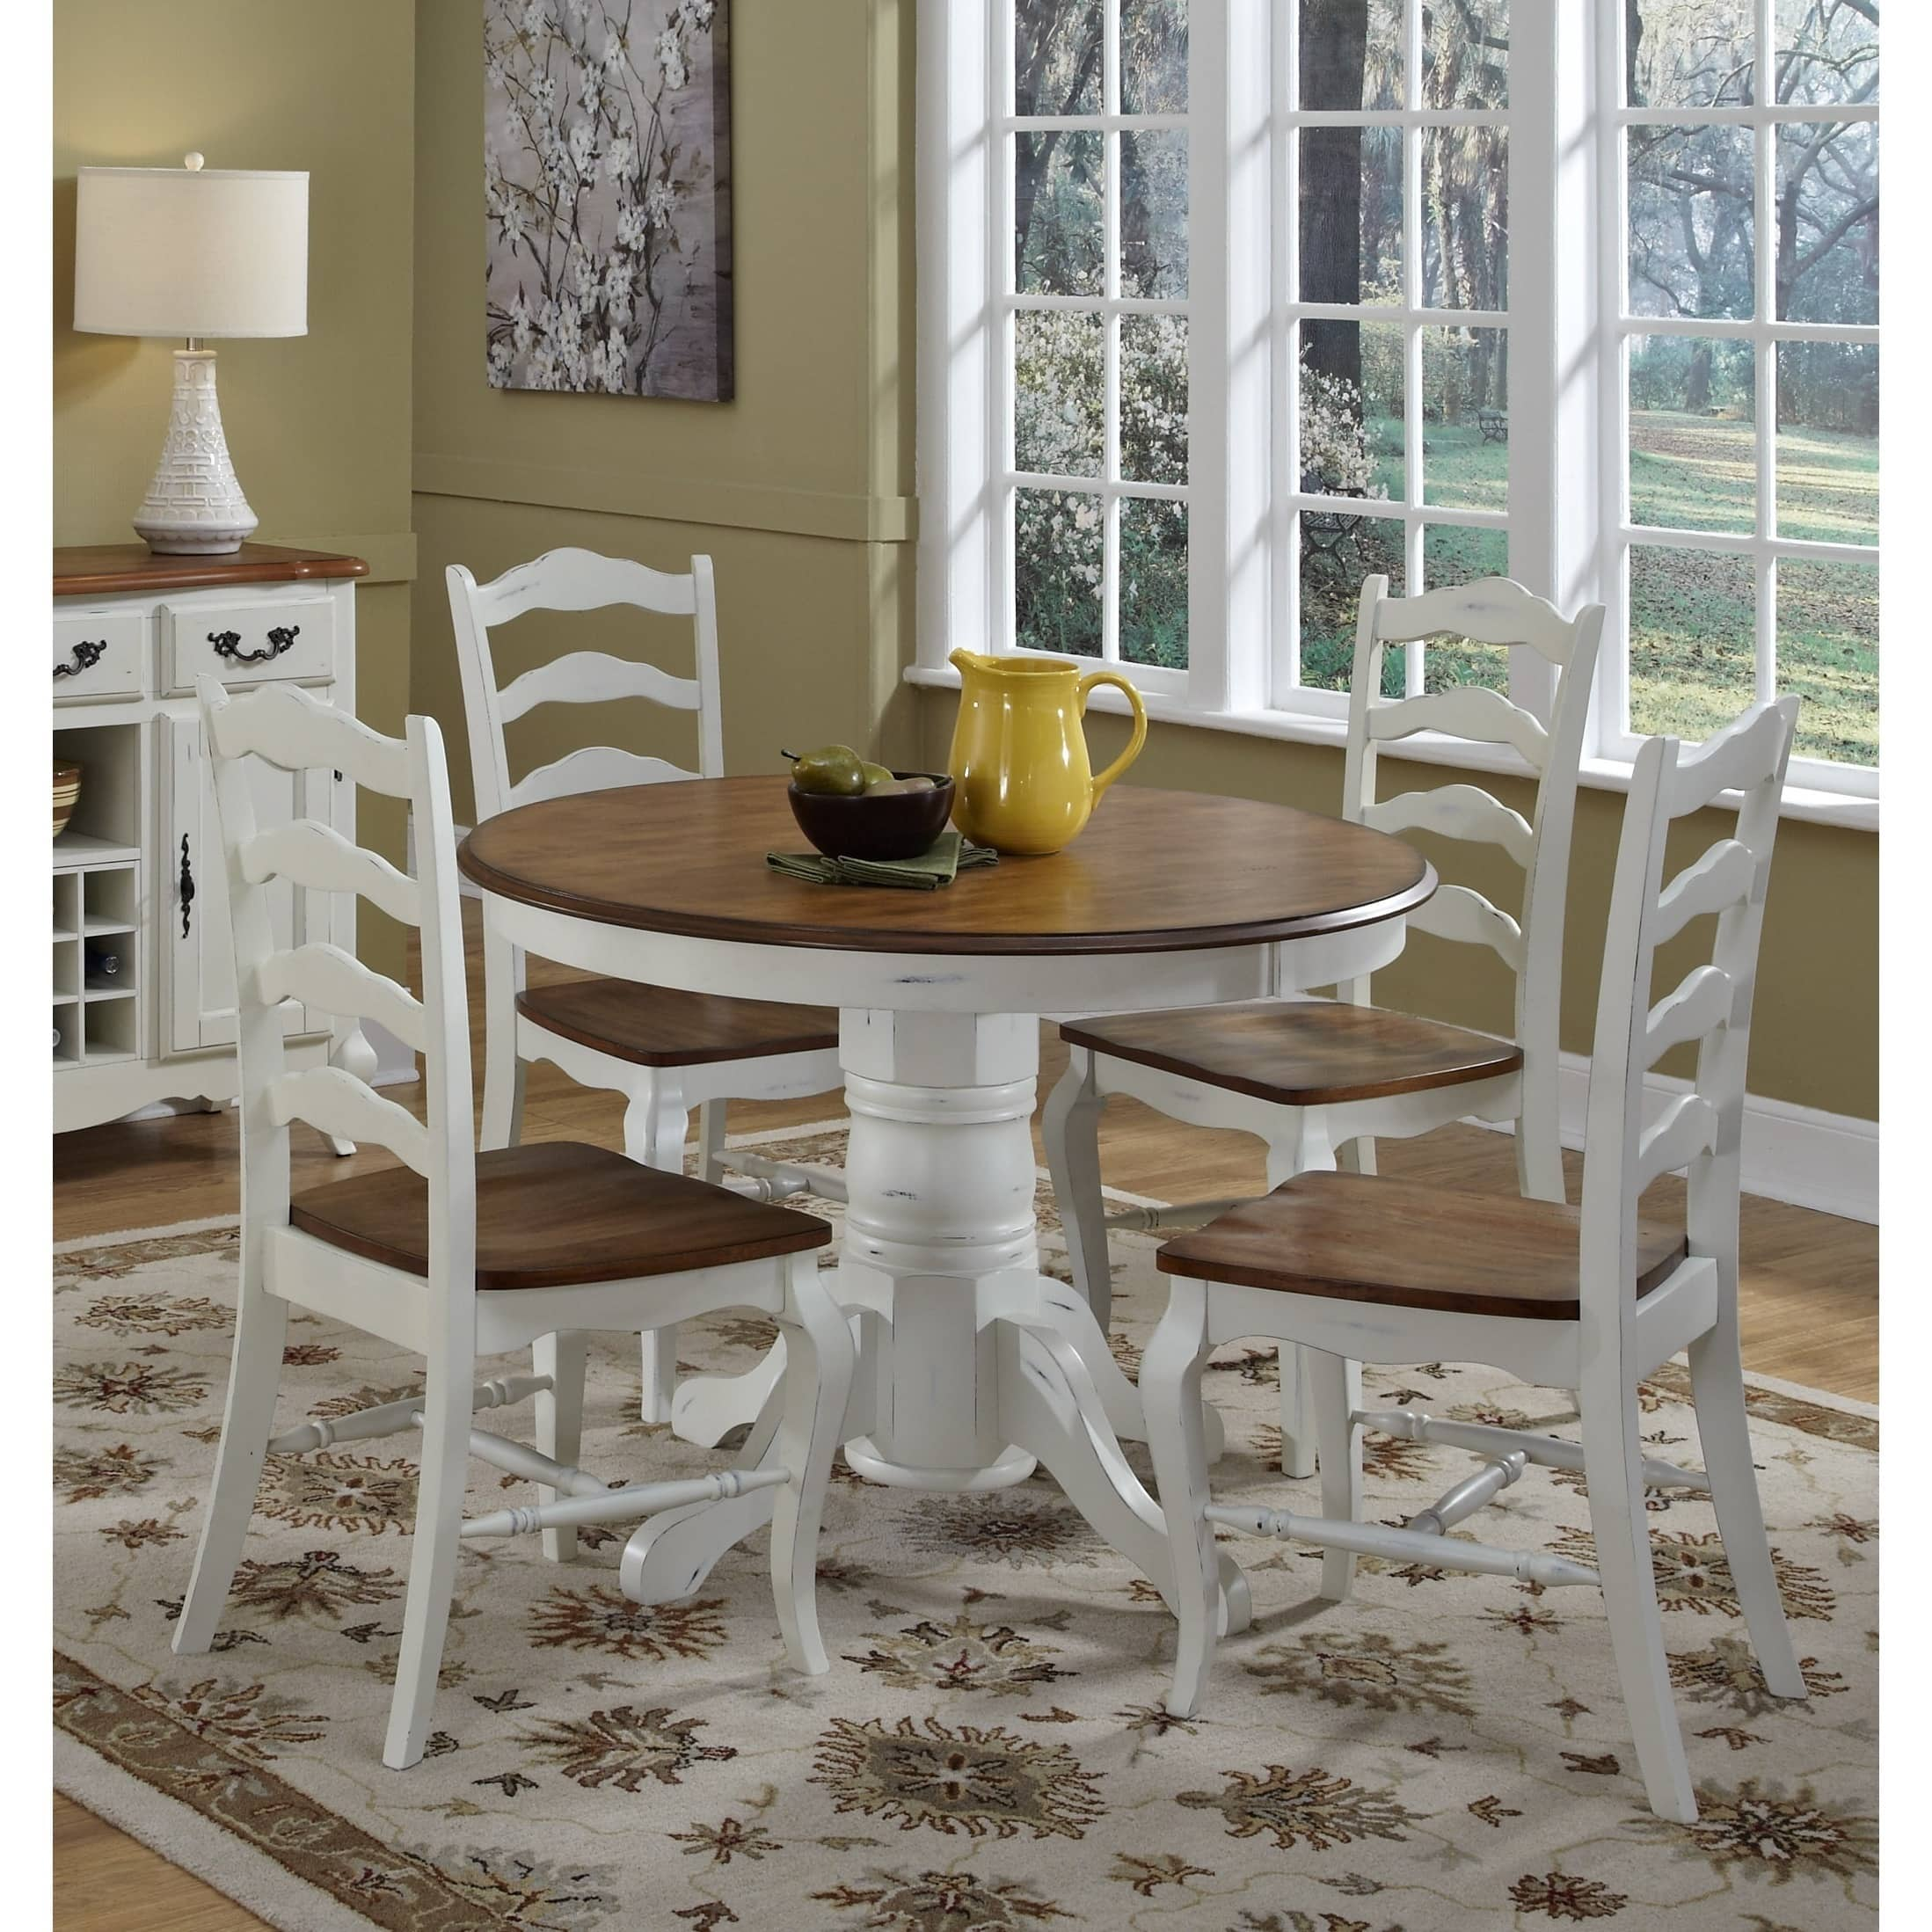 Buy Dining Room Furniture Online: Buy Kitchen & Dining Room Tables Online At Overstock